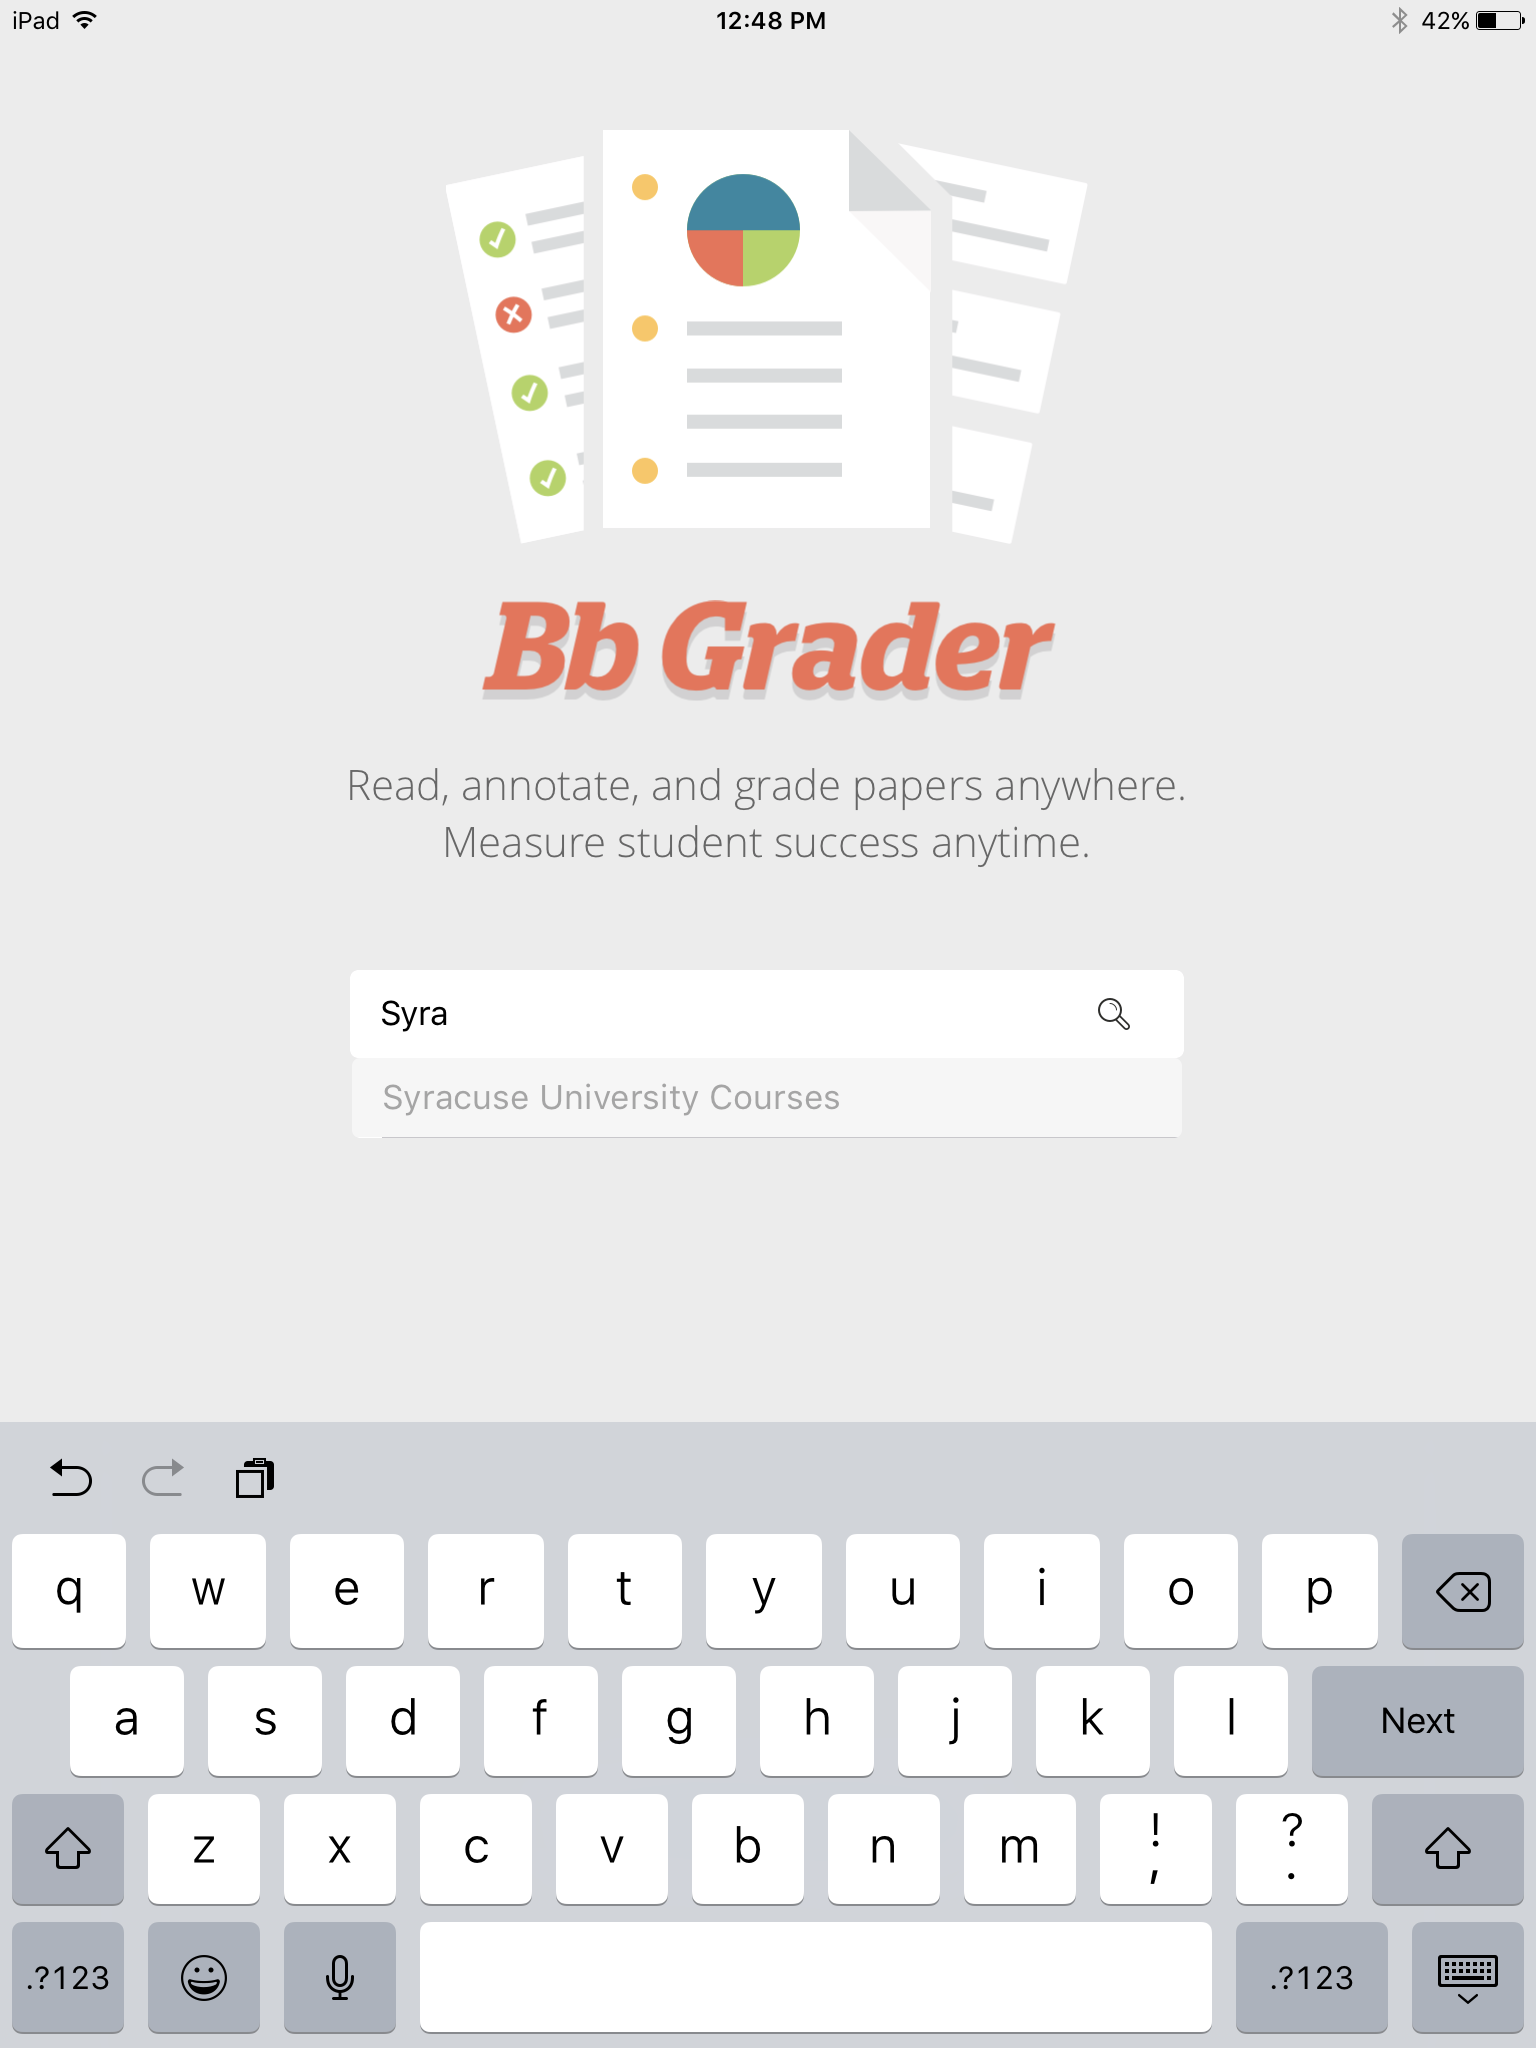 Bb Grader Select Institution Screen